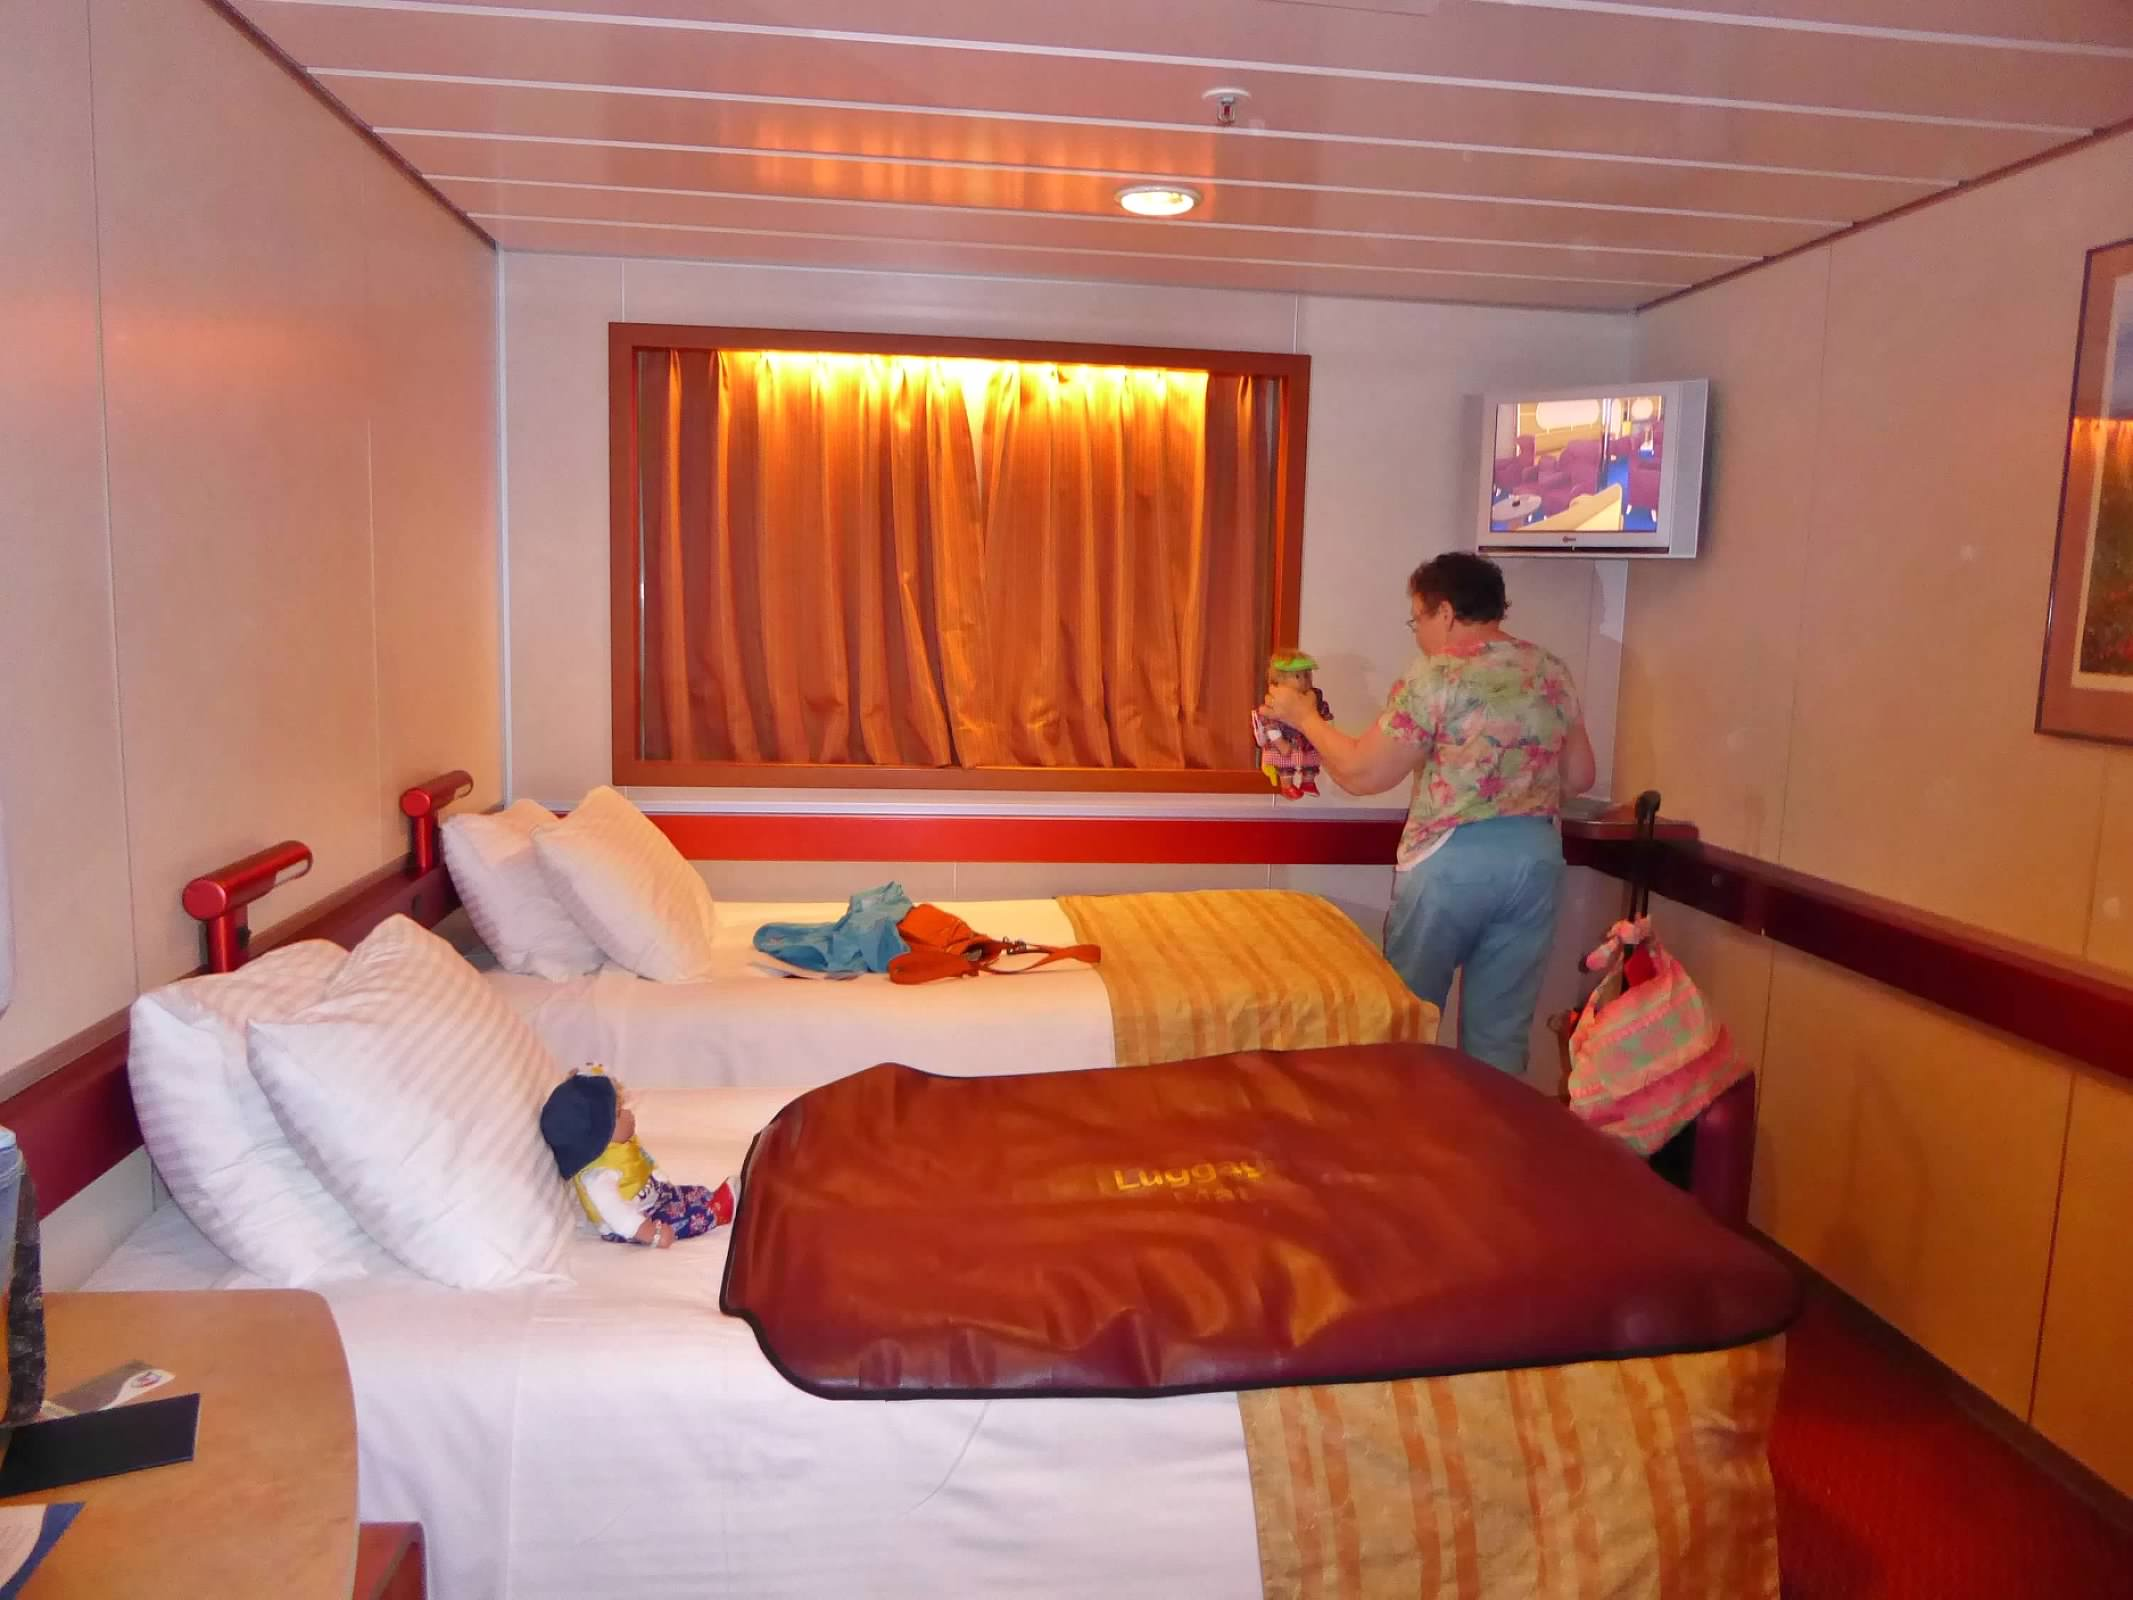 Trundle Bed For Inside Cabin On Elation Carnival Cruise Lines